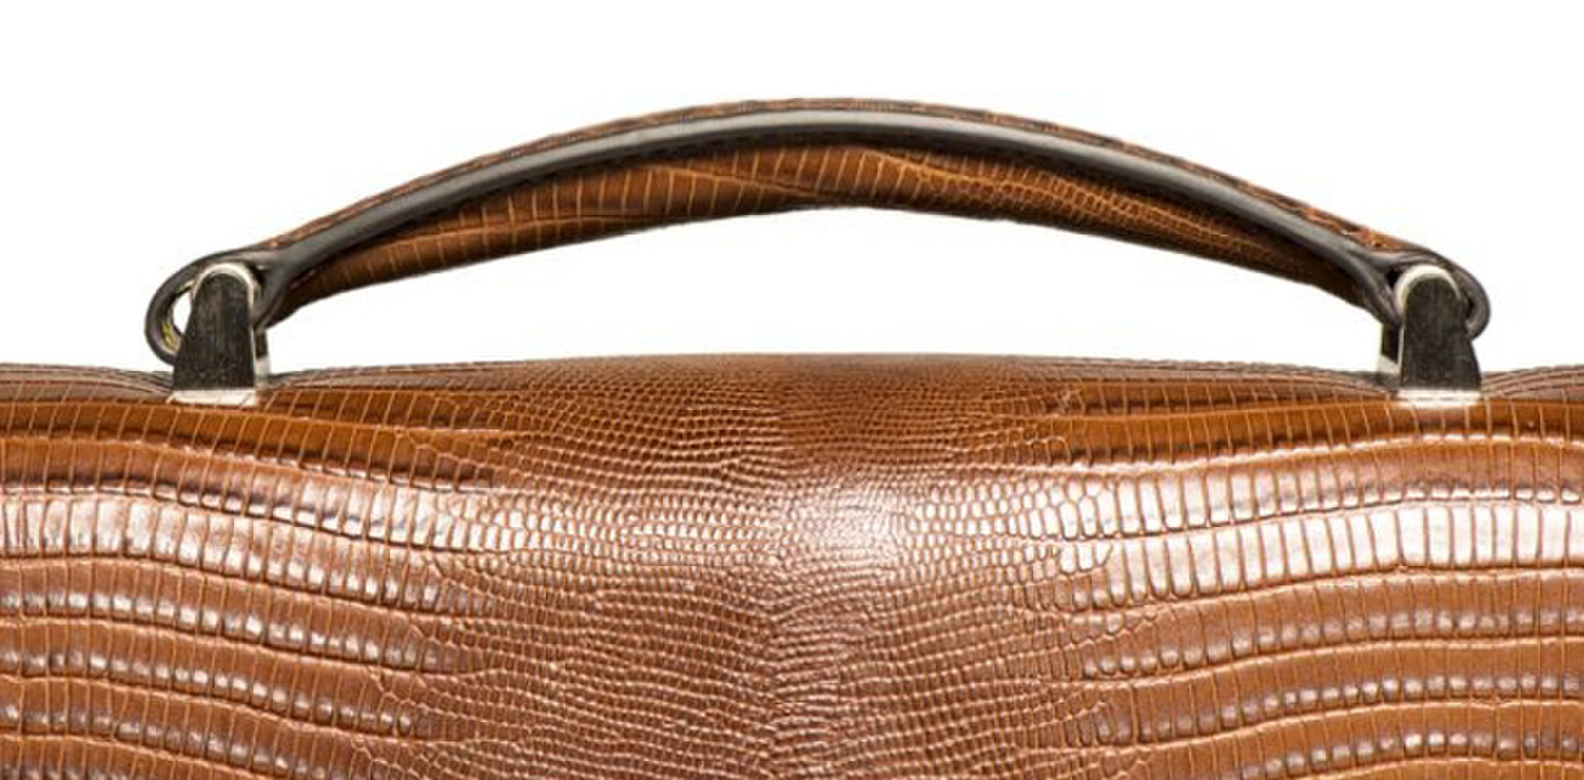 Websites Feed Frenzy For Second Hand Luxury Handbags